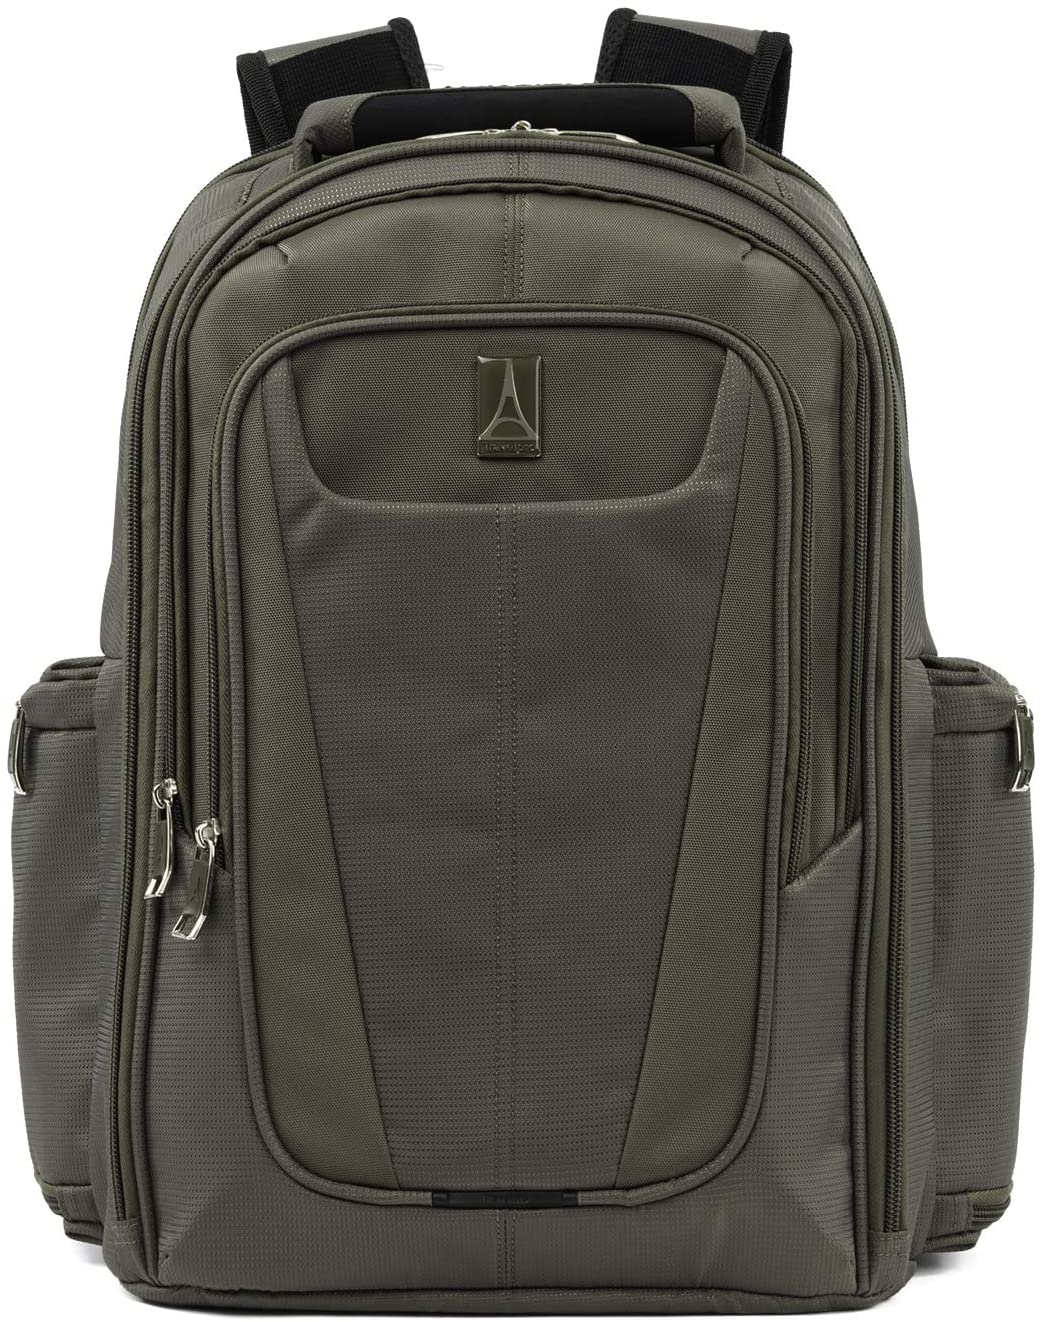 Travelpro Maxlite 5-Lightweight Underseat Laptop Backpack, Slate Green, 17.5-Inch